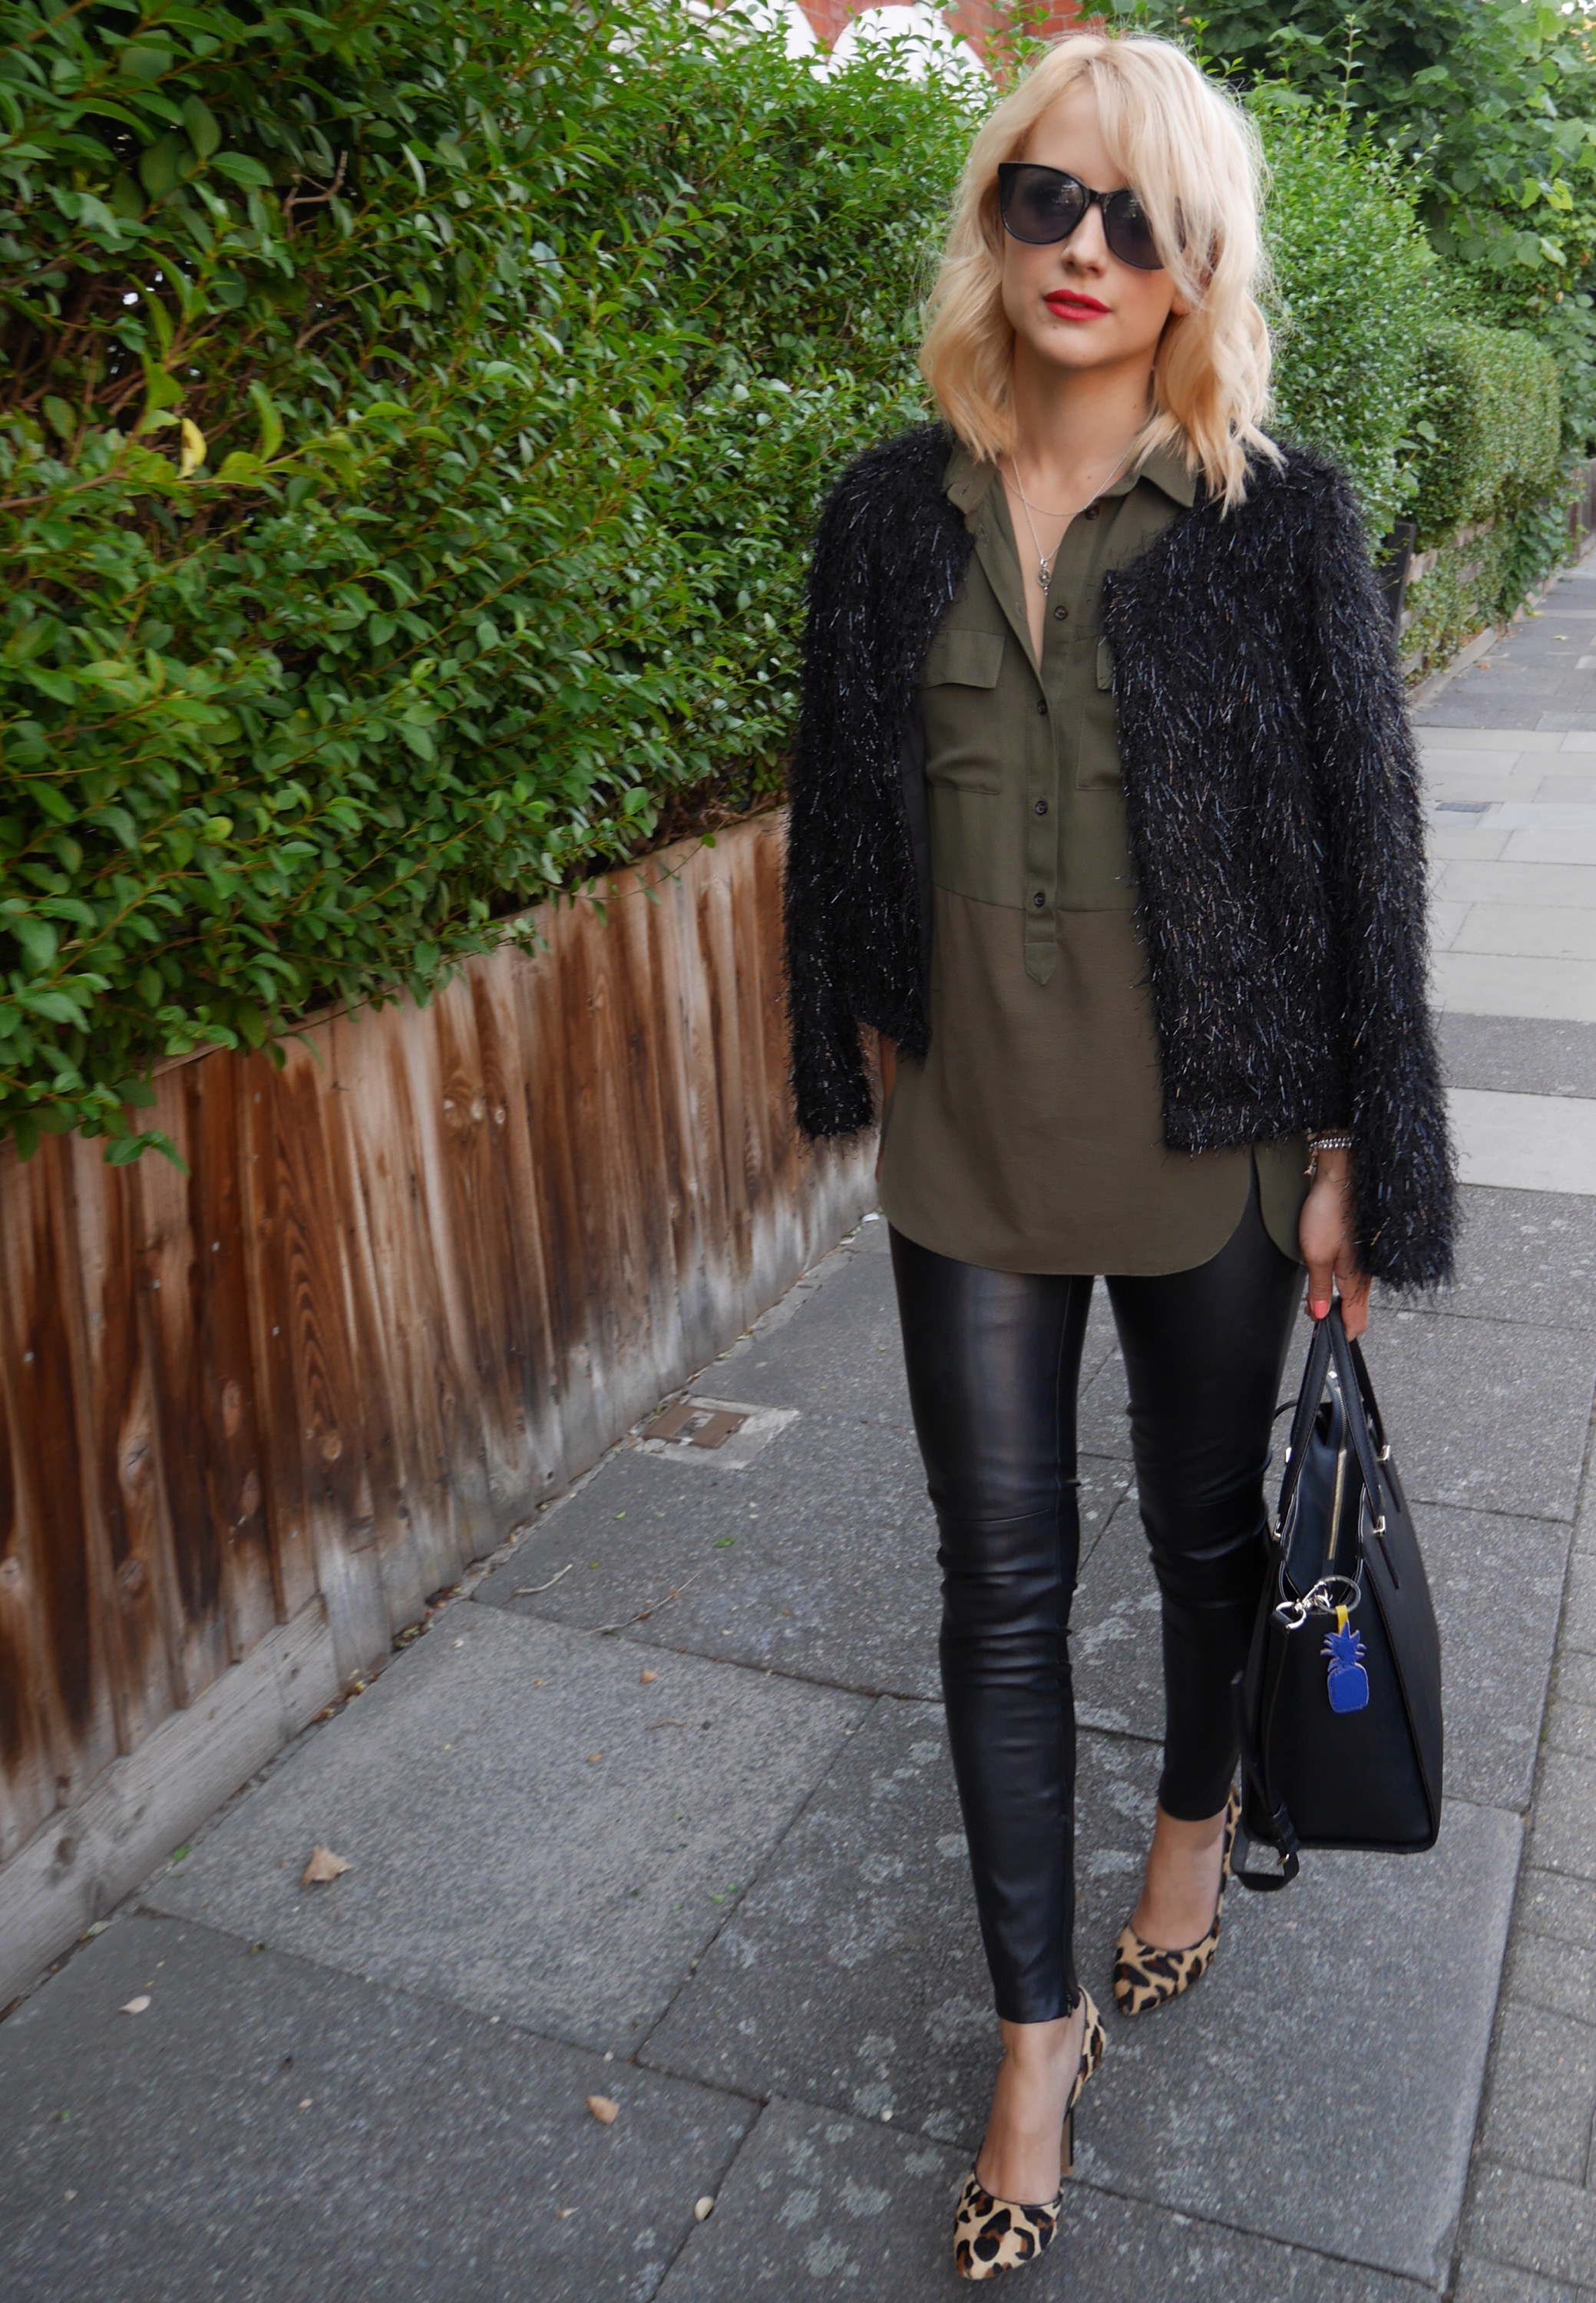 cocomamastyle | mum style blog UK | outfit of the day | khaki and black